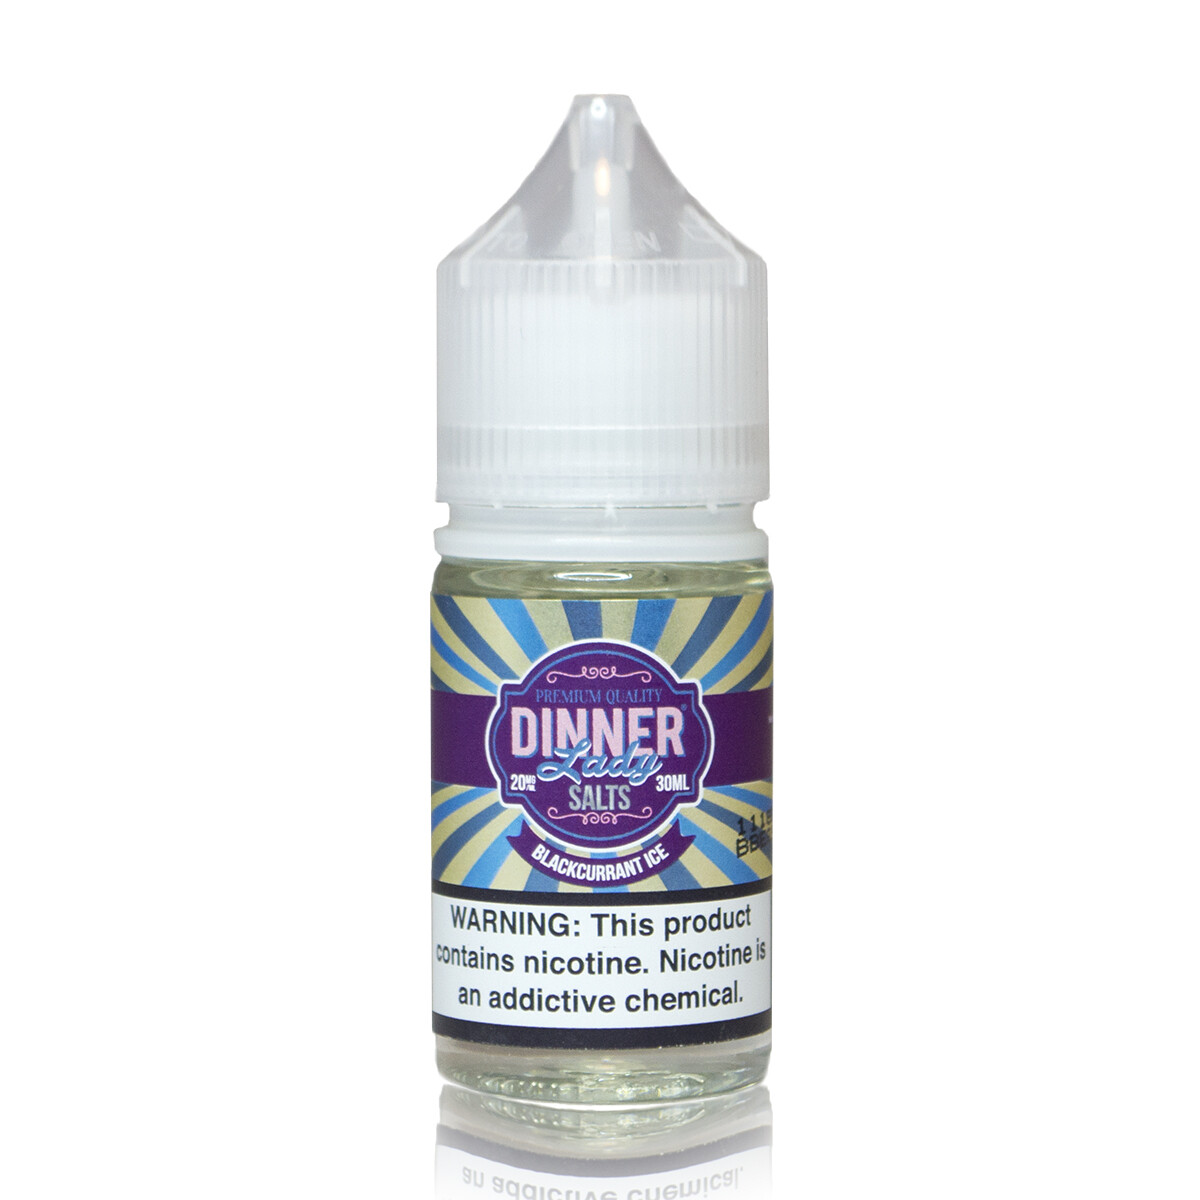 ЖИДКОСТЬ DINNER LADY ICE SALT: BLACKCURRANT 30ML